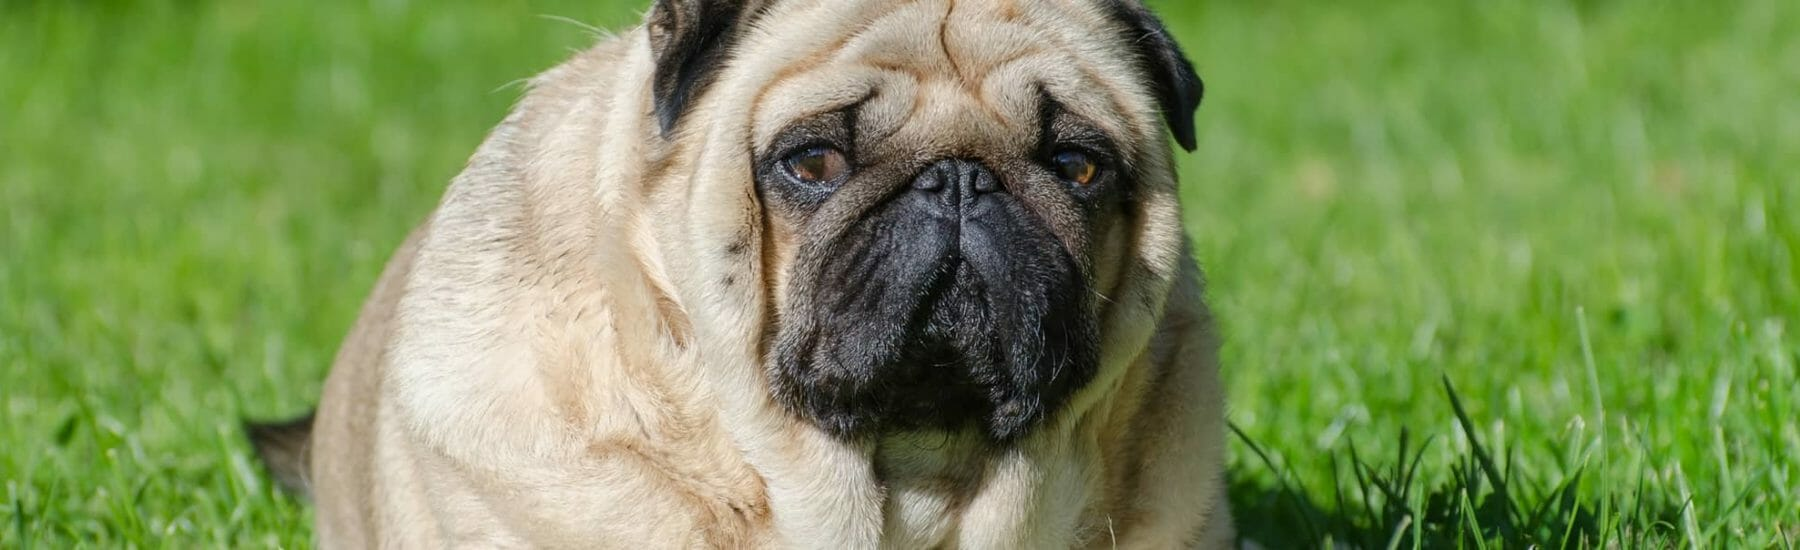 Weight Management Services for Pets